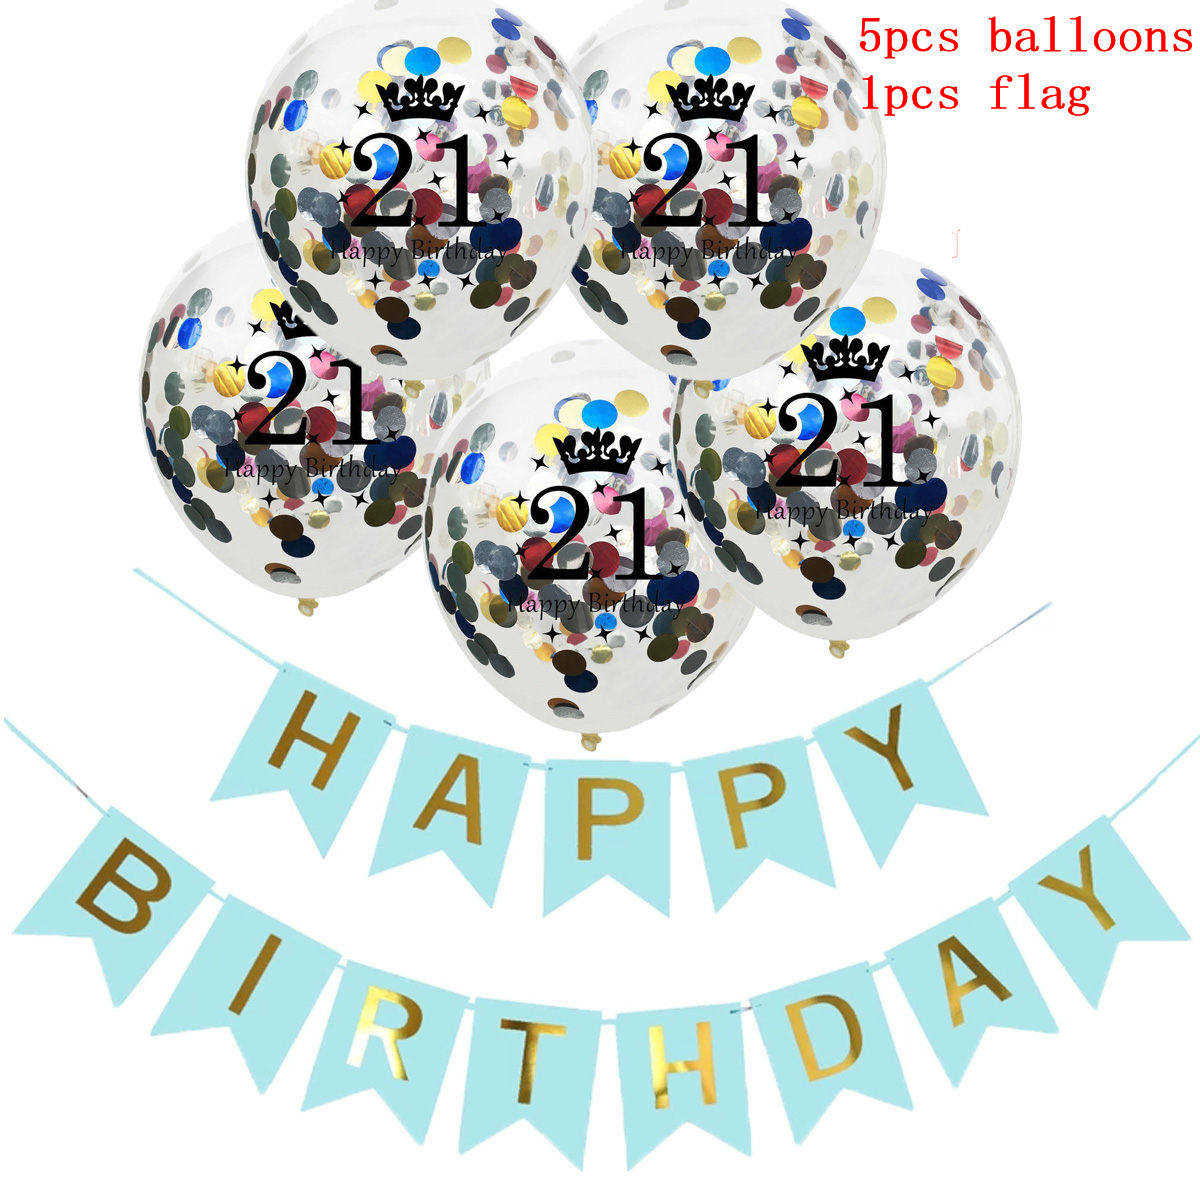 6pcs set 21st Balloons Sequins Balloons Latex Balloons Blue Birthday Flag Engagement Party Events DIY Decoration in Ballons Accessories from Home Garden